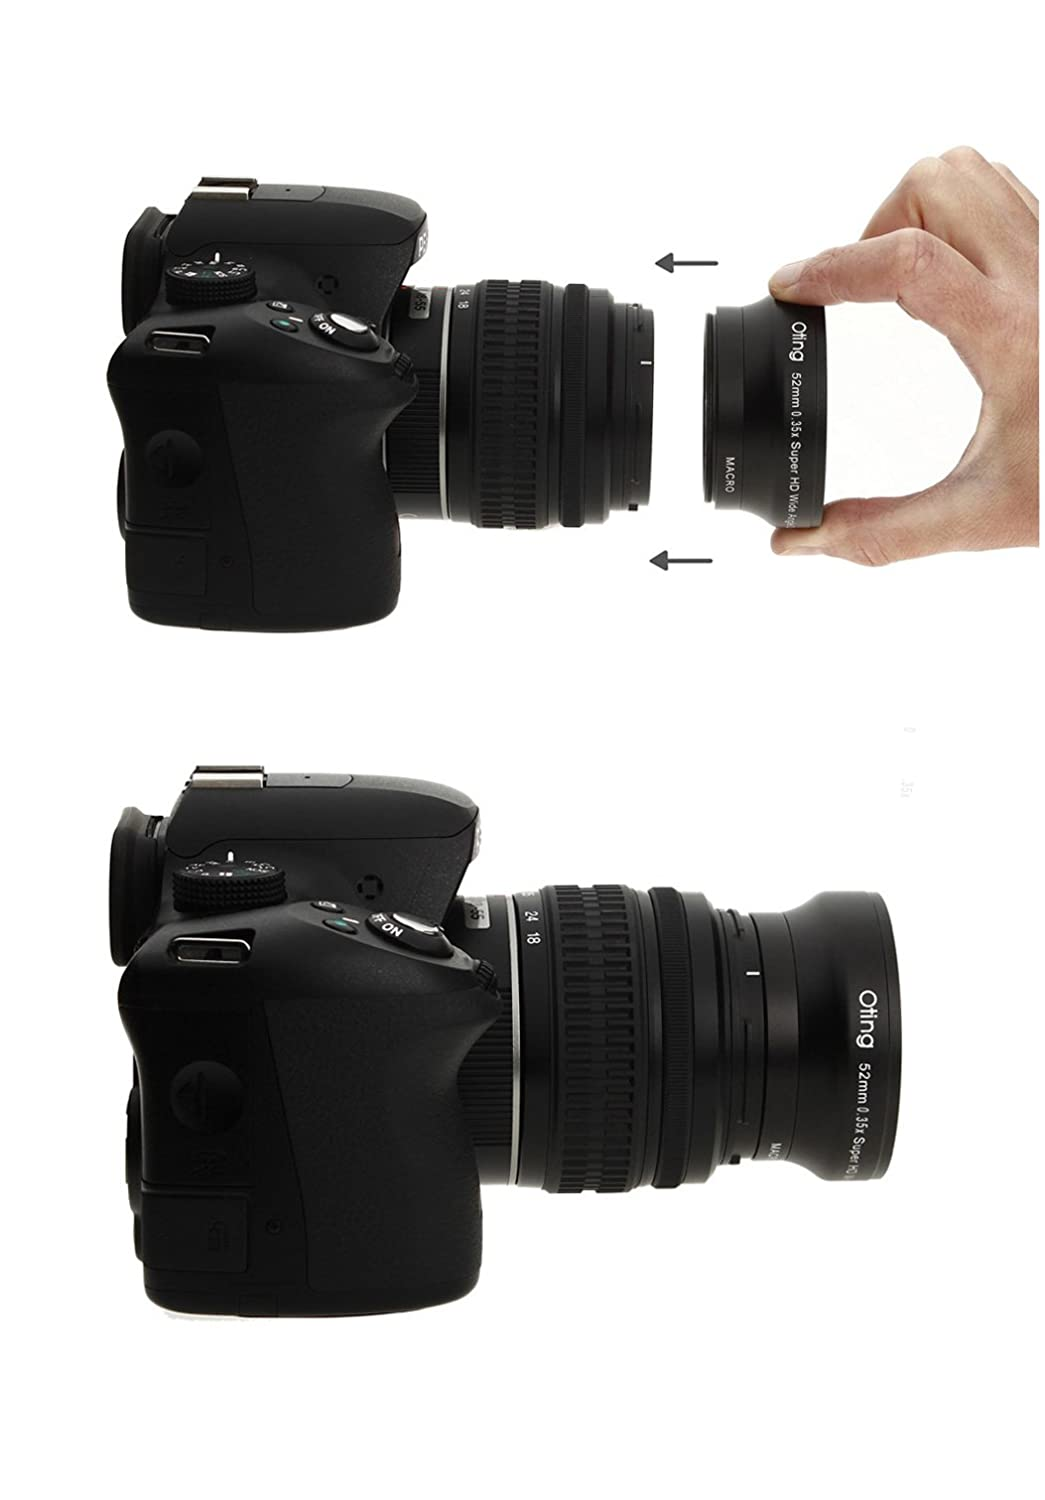 650D 600D 30D 550D Fisheye Lens 0.35X with Macro for Canon EOS 1100D 350D 300D 10D 400D 500D 50D 5D 1D 20D 7D 40D 450D 60D 6D 1000D 100D